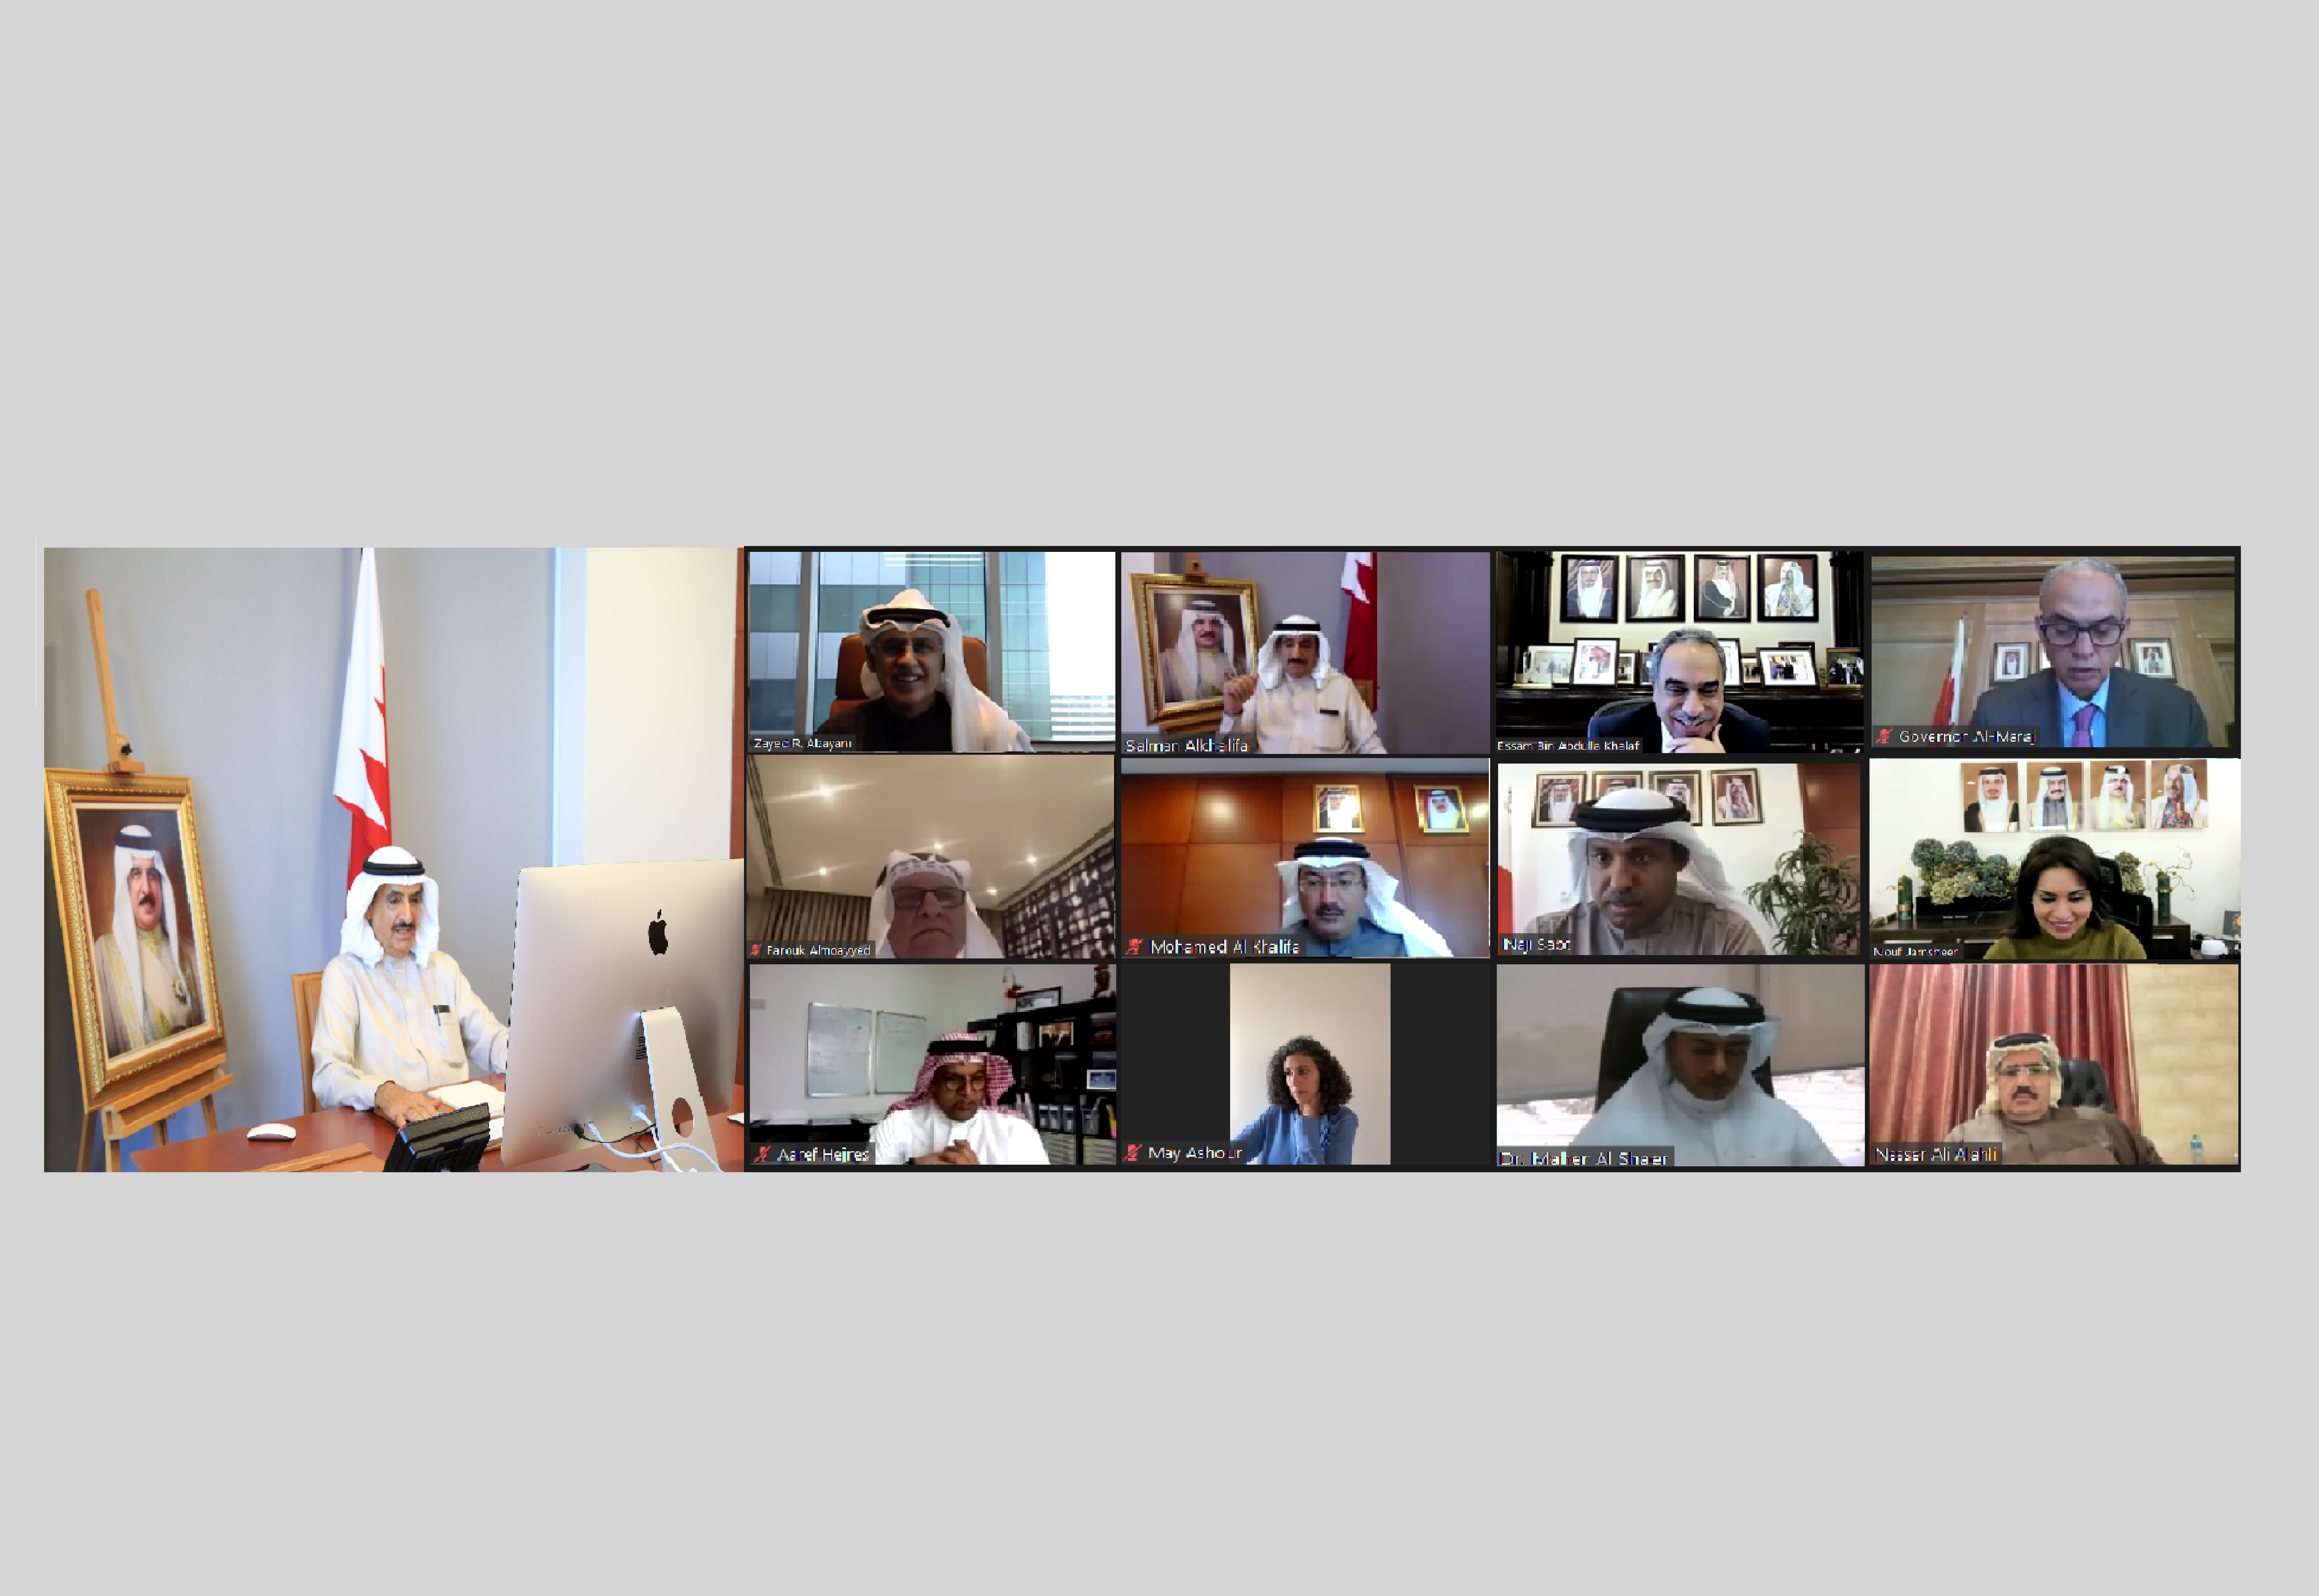 RERA Board of Directors holds its meeting remotely  His Excellency Sheikh Salman bin Abdullah... Board of Directors approves the National Real Estate plan